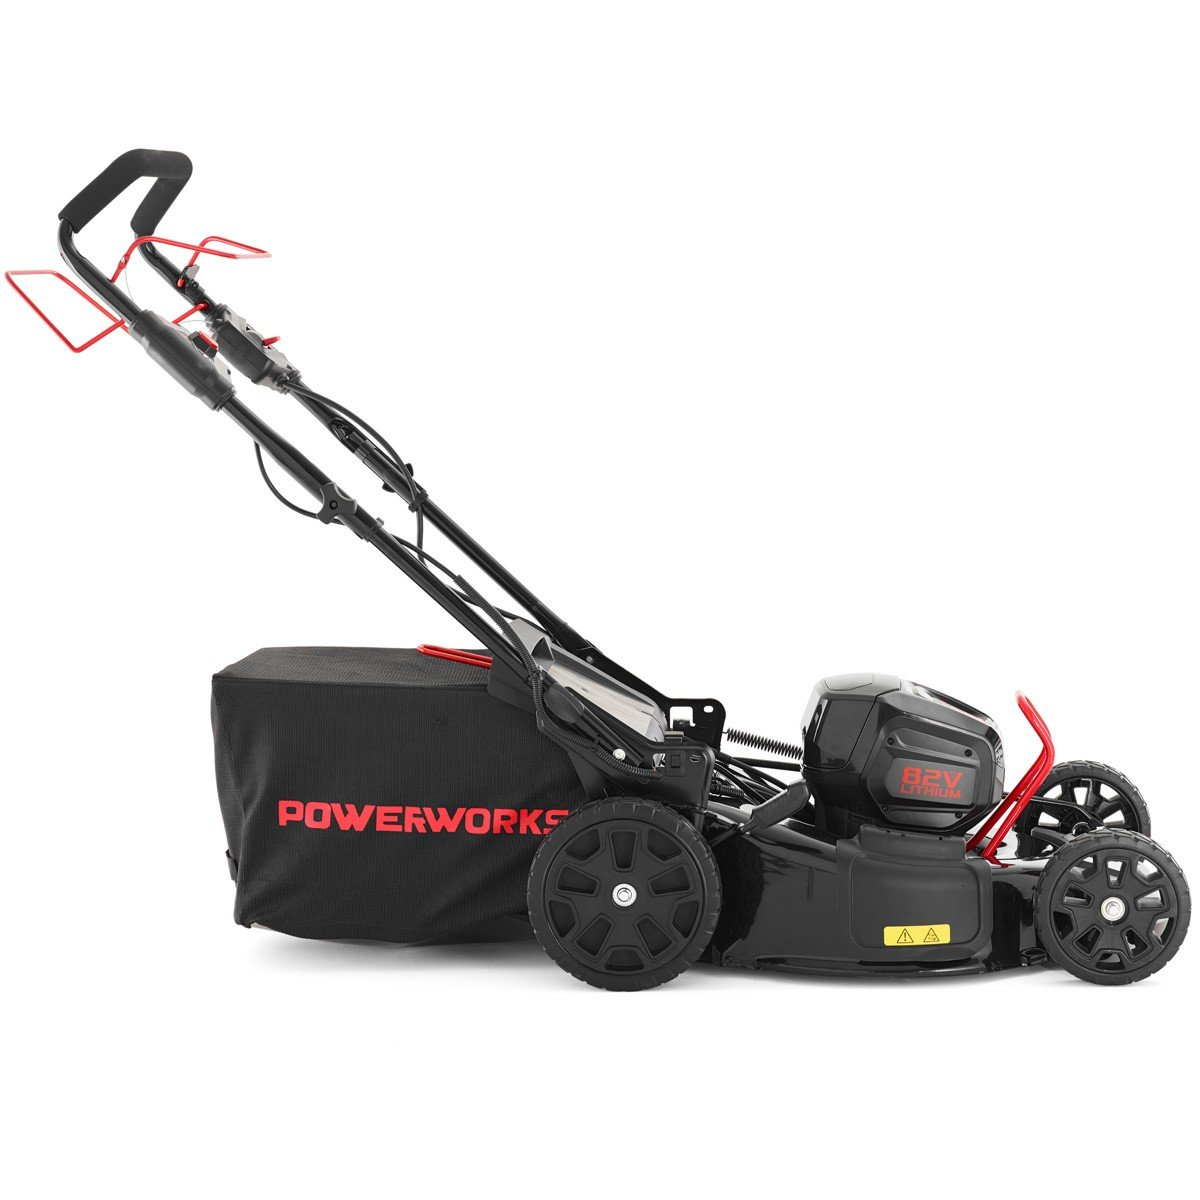 PowerWorks P-82RM46S - Cortacésped con batería RM46S 3-IN-1 ...